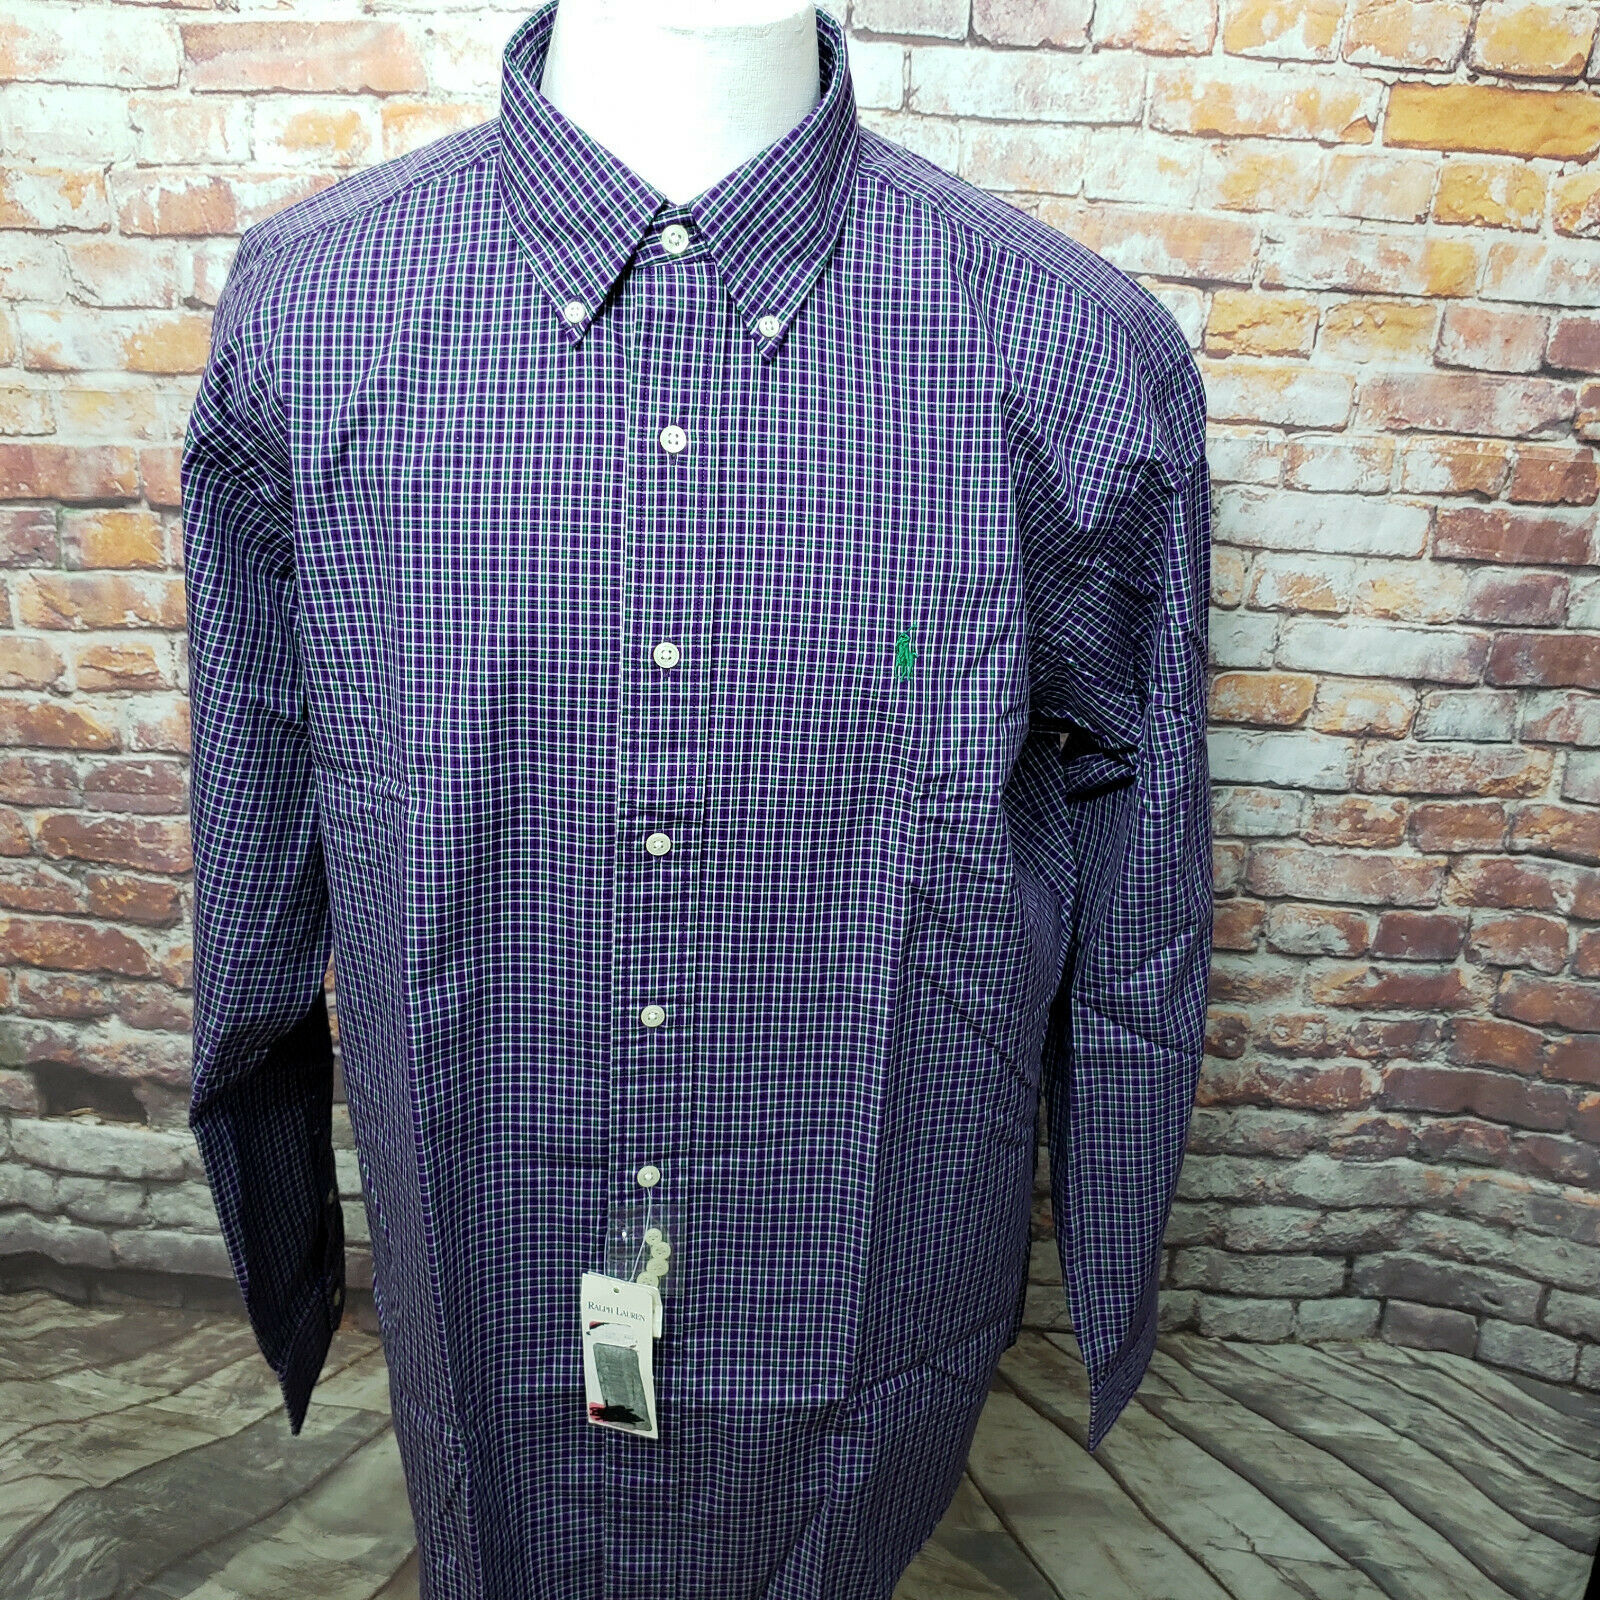 POLO RALPH LAUREN PLAID LONG SLEEVE CLASSIC FIT CASUAL SHIRT SIZE L A27-03